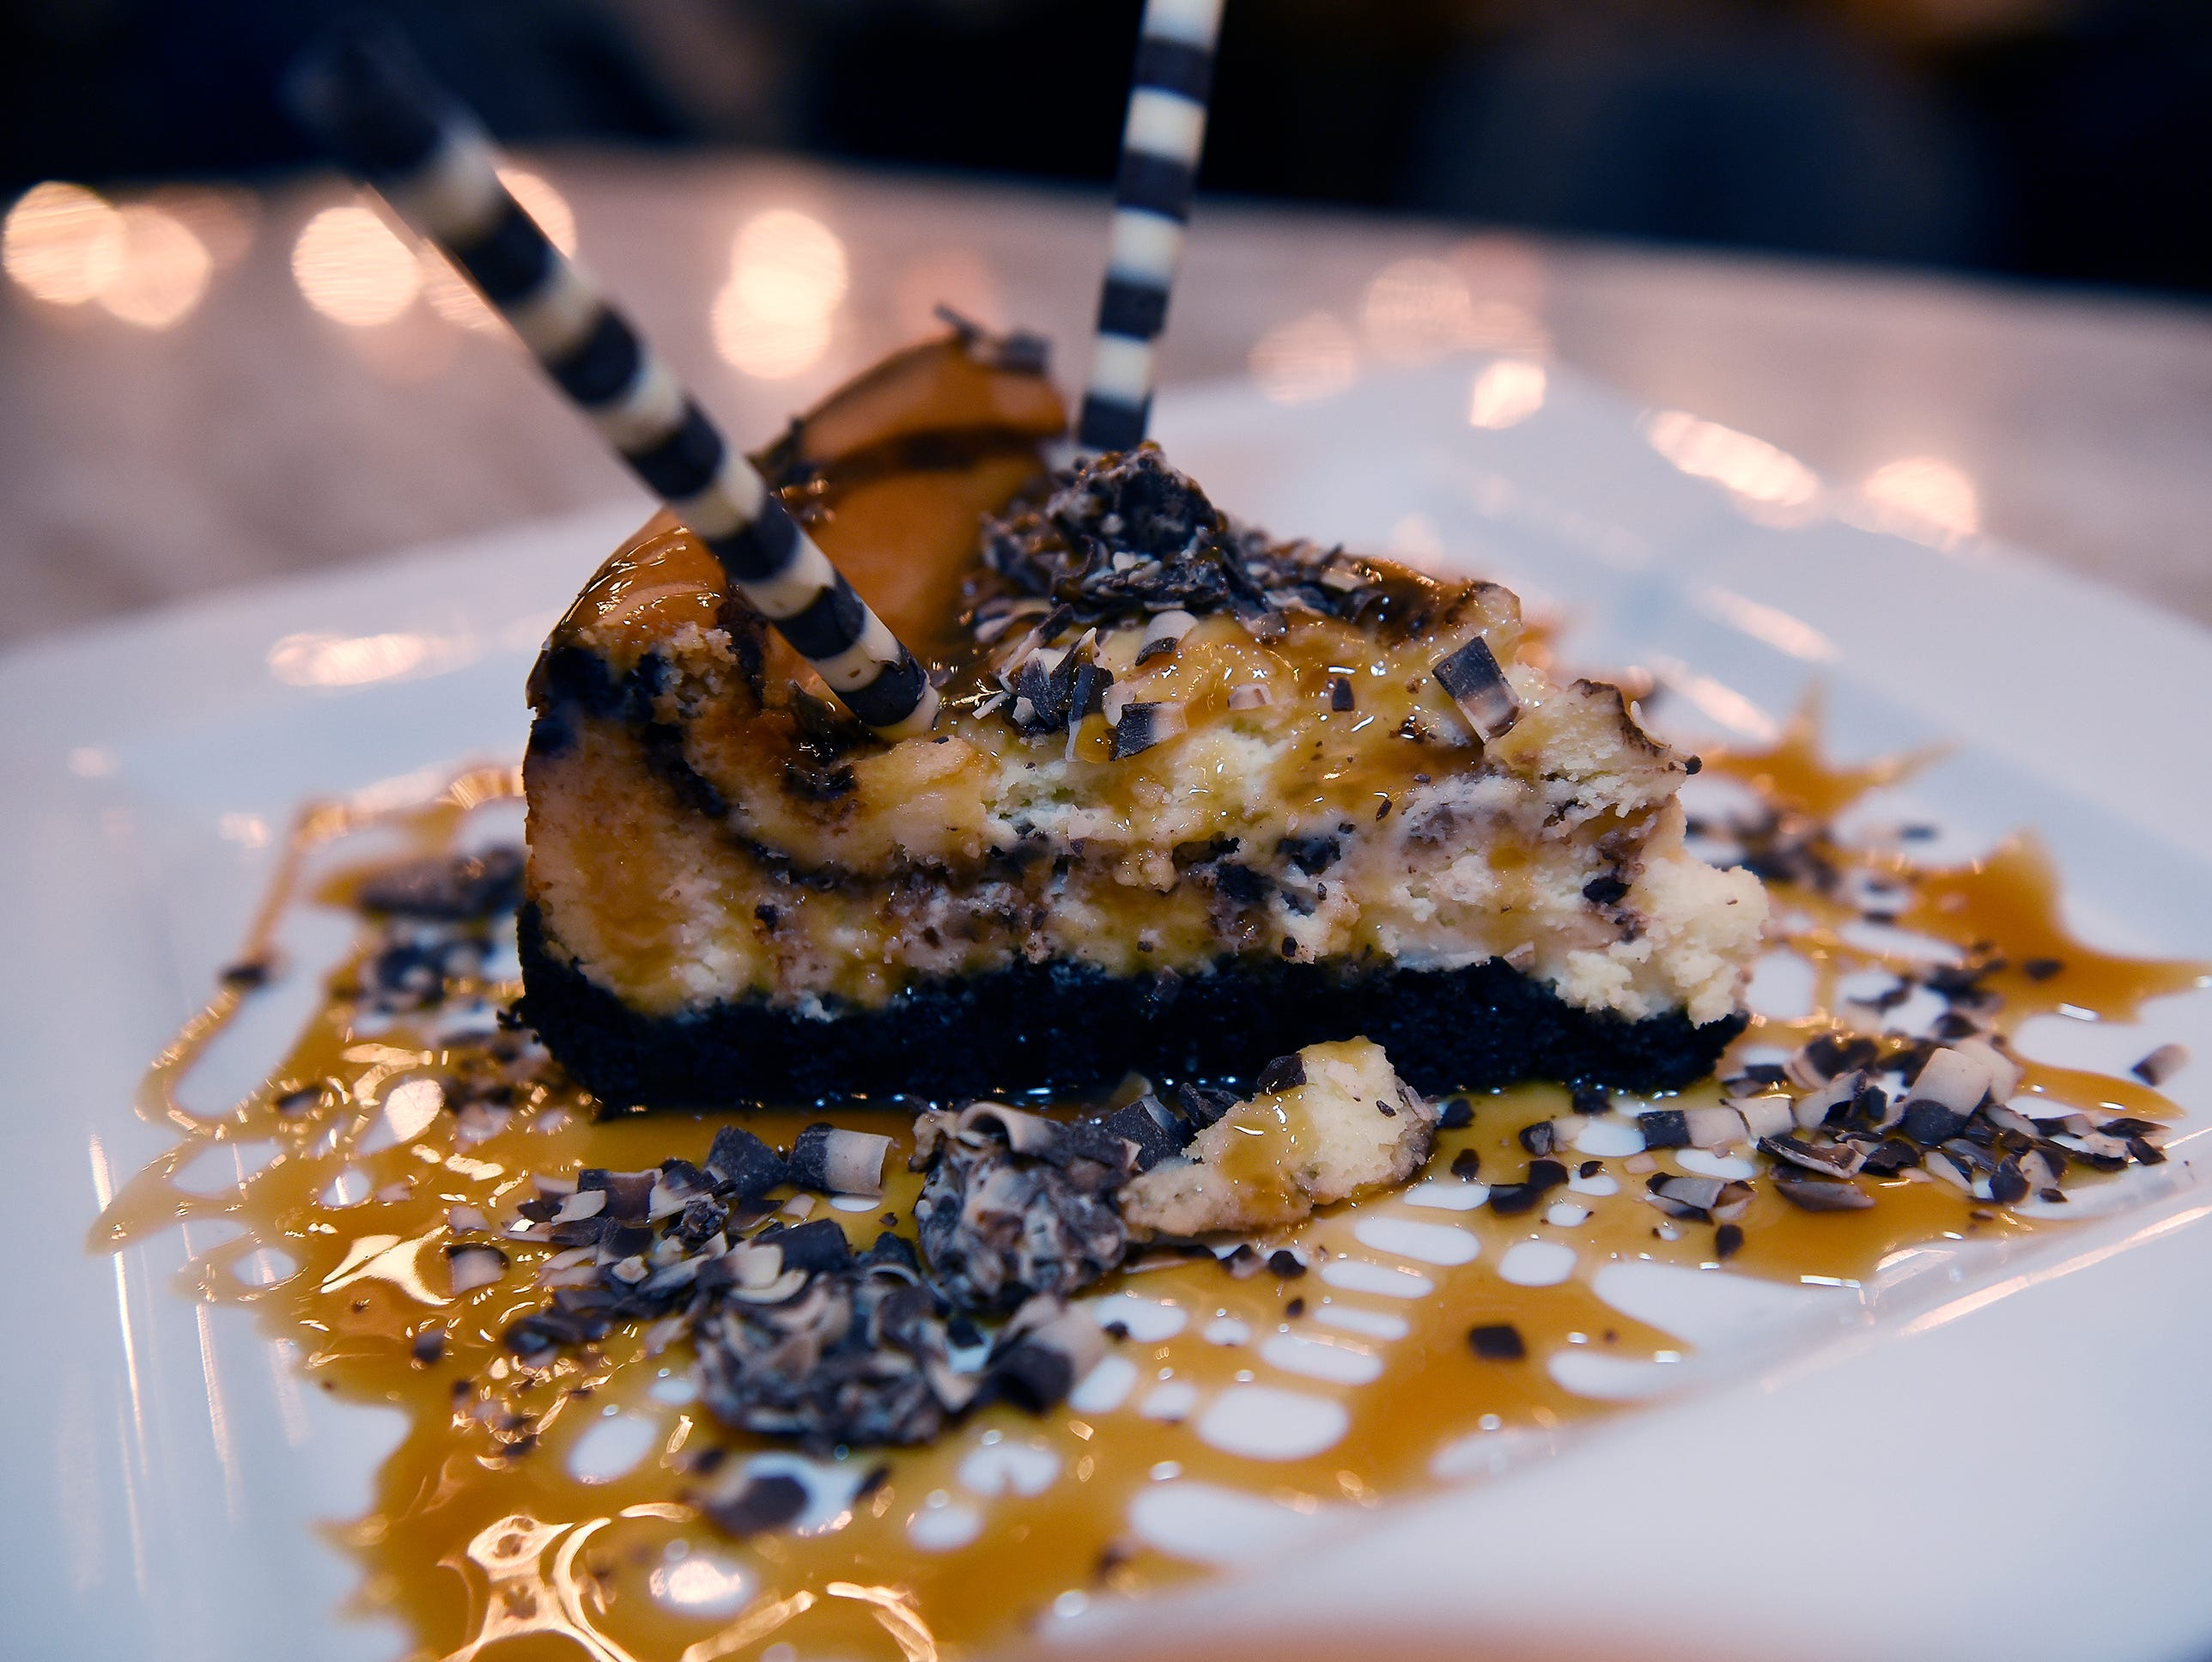 A plate of the Black Bottom Cheese Cake.